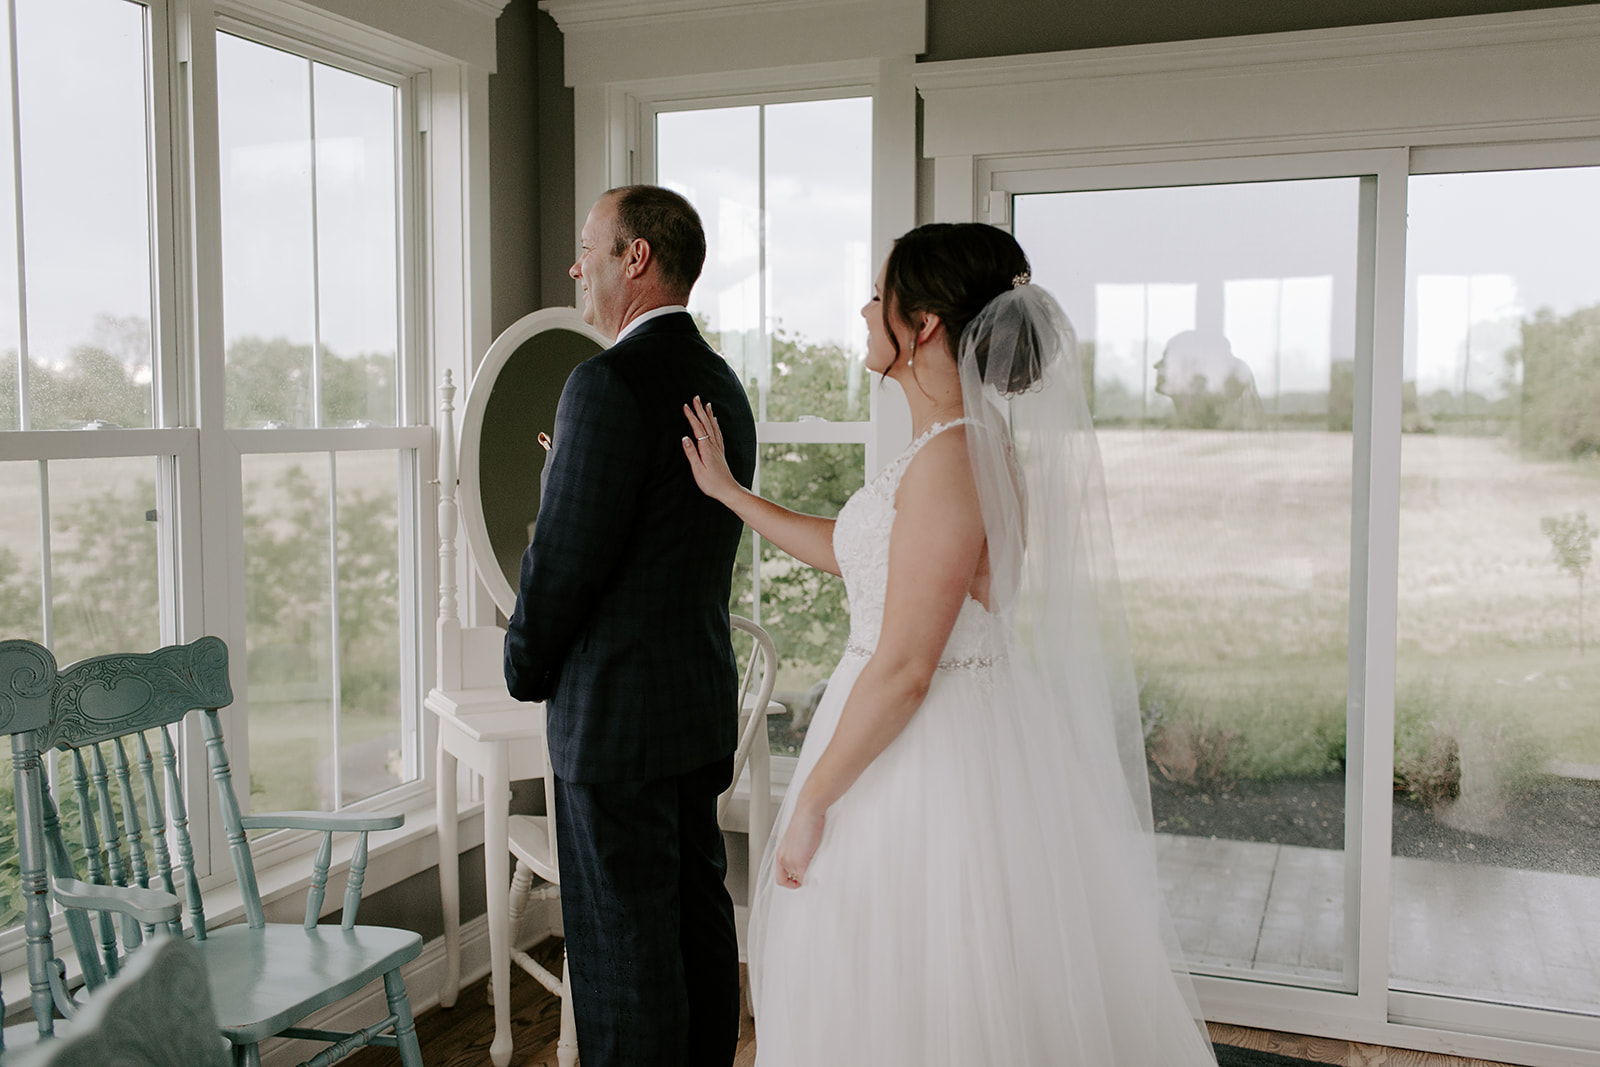 Kendra_and_Mattew_Indiana_Wedding_by_Emily_Wehner-145.jpg